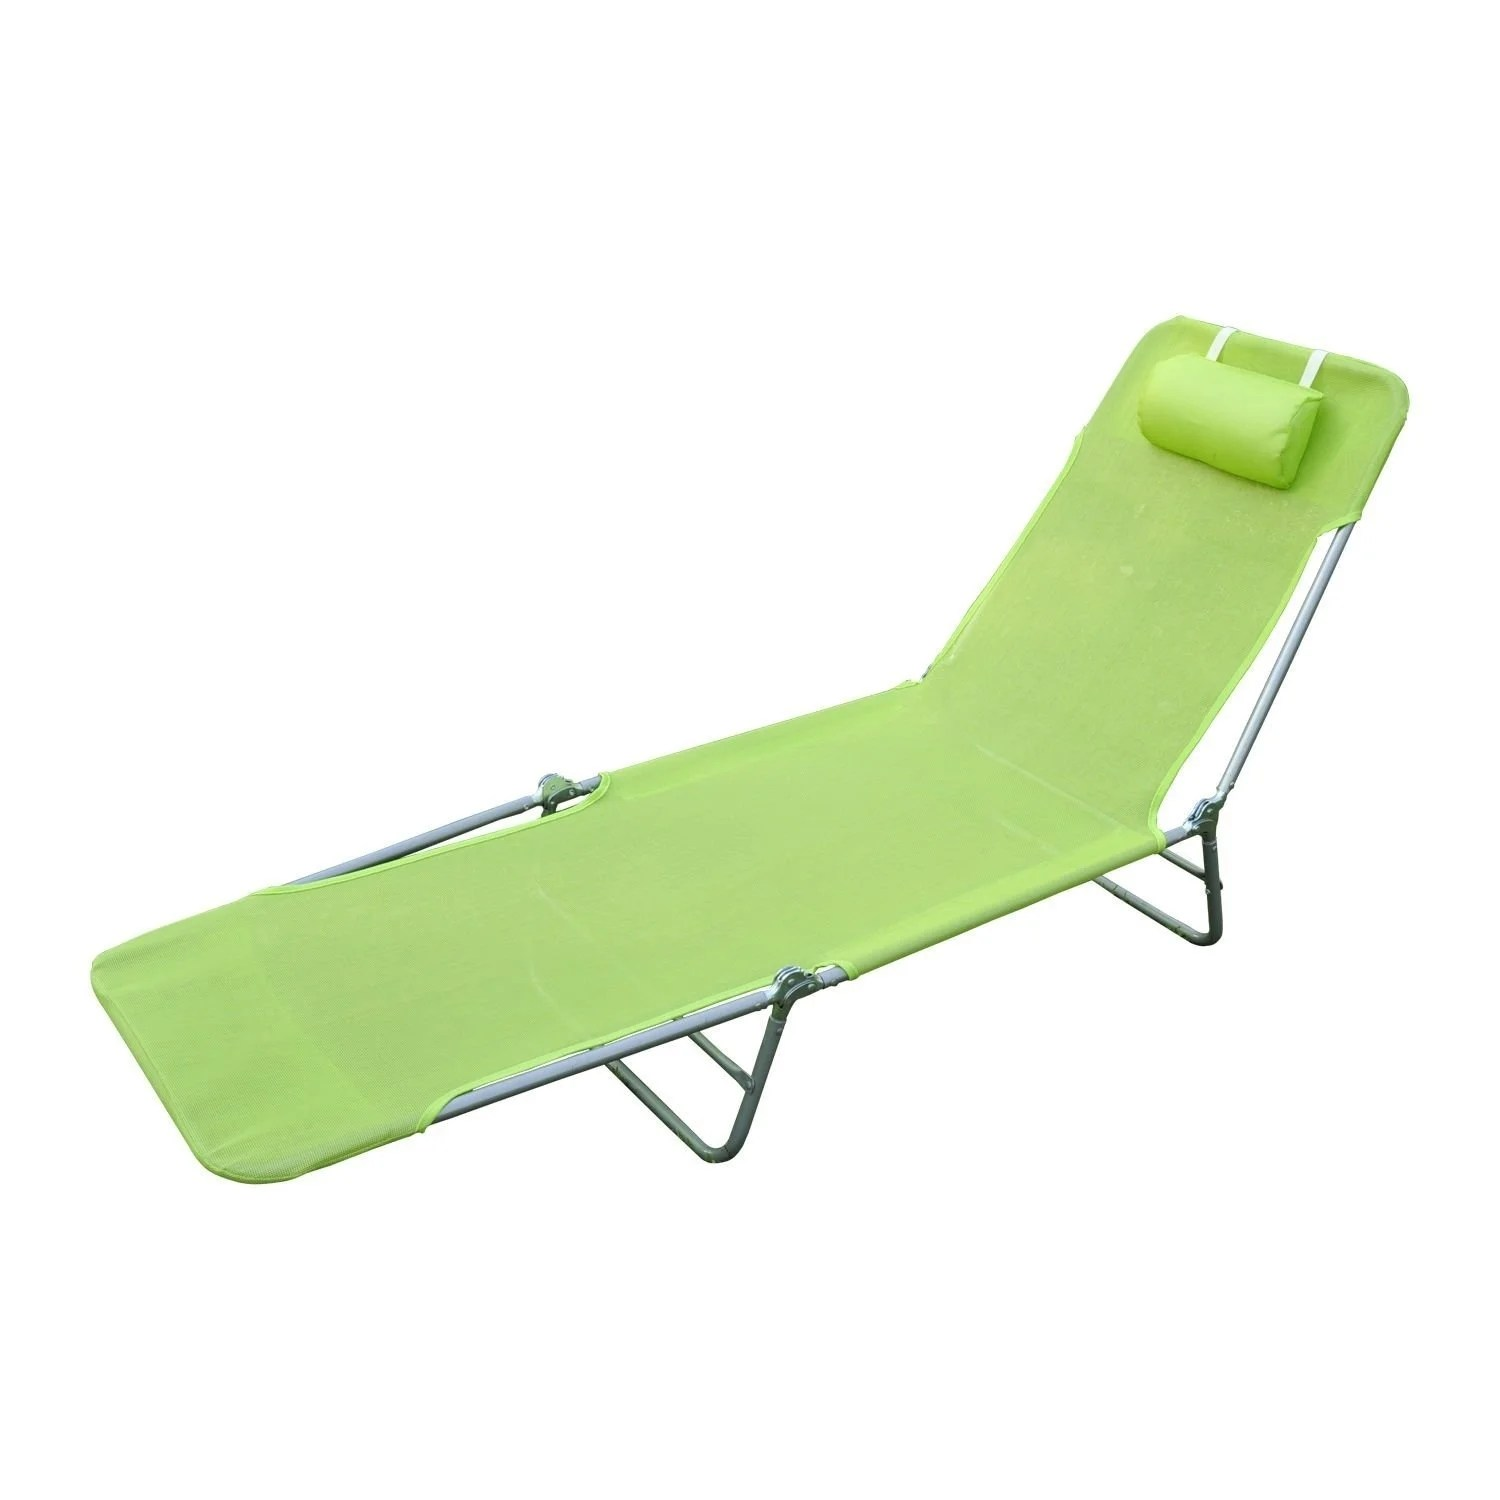 Folding Lounge Chair Outsunny Aluminum Lightweight Outdoor Patio Folding Chaise Lounge Chair Green